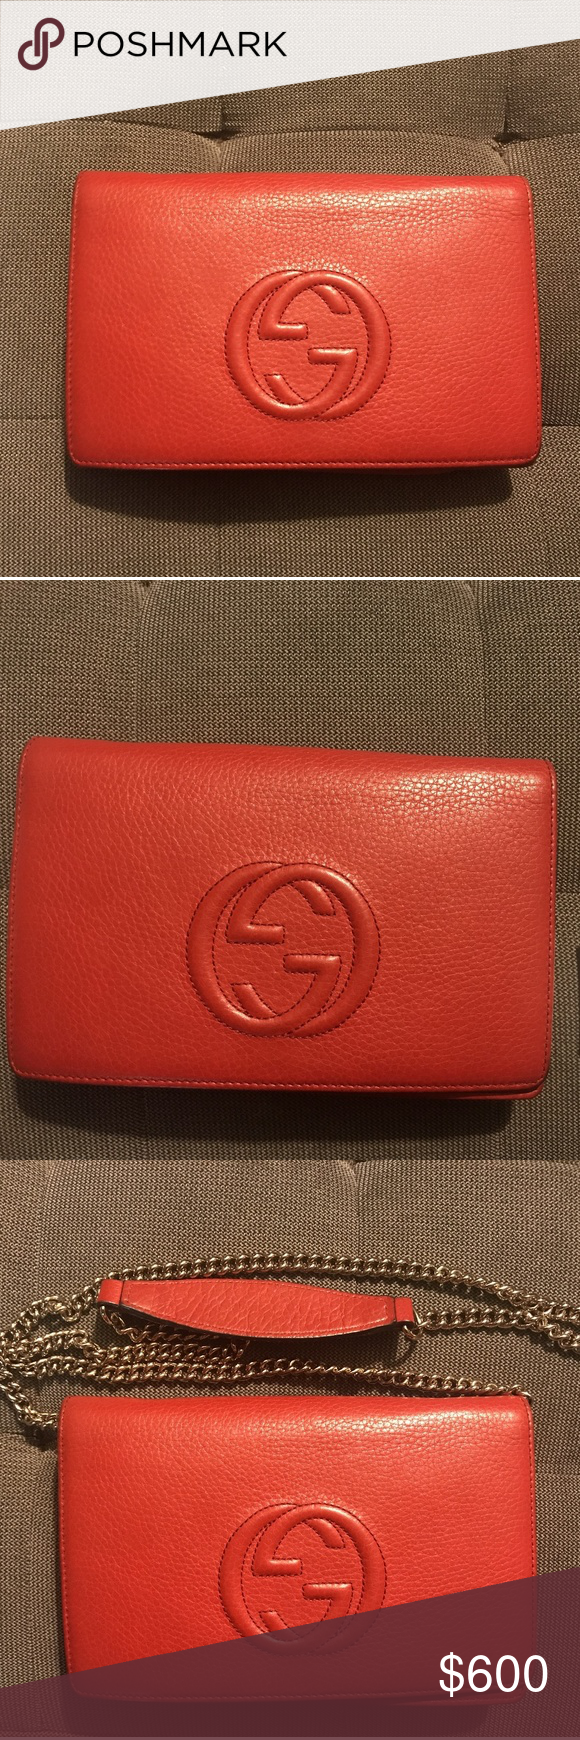 5439fad840d Gucci soho clutch with chain good condition used gucci bags mini bags png  580x1740 Gucci soho